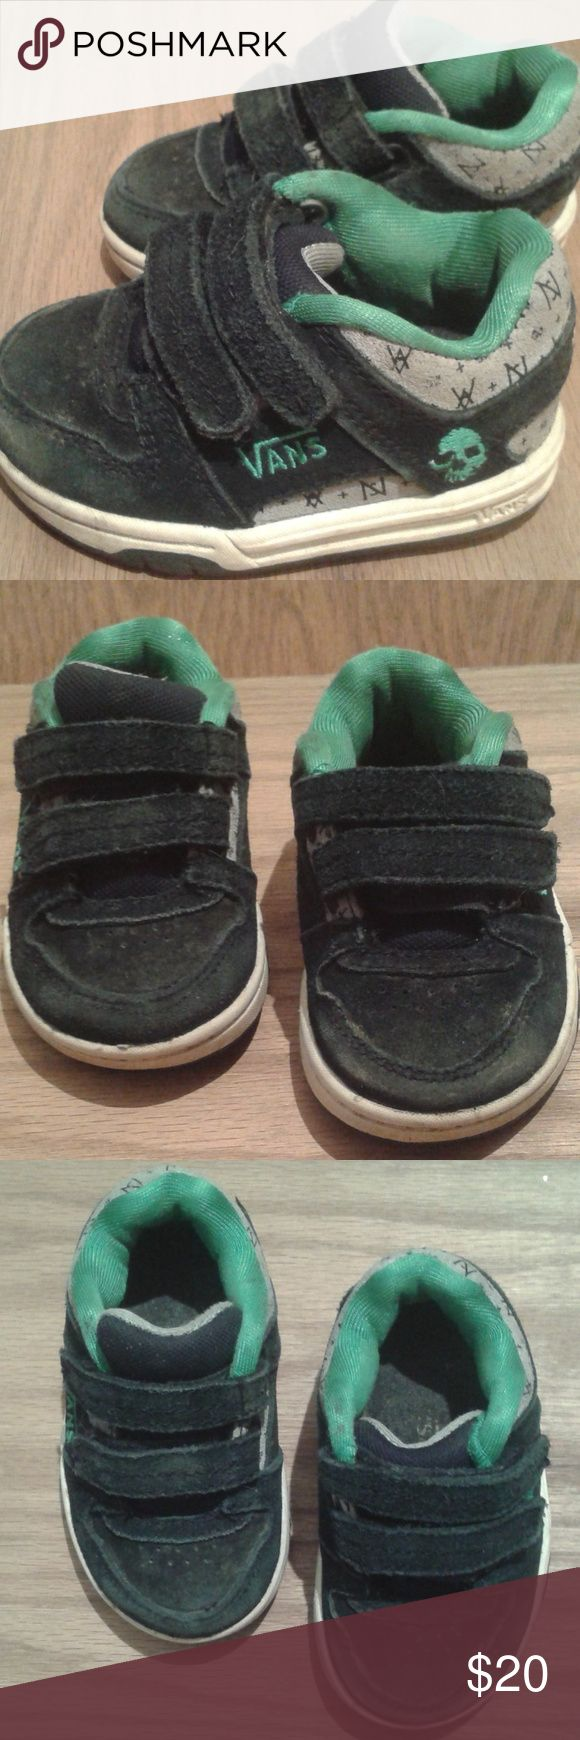 """VANS LITTLE BOYS SIZE 4, BLACK & GREEN LITTLE BOYS VANS BLACK AND GREEN. SIZE 4. NORMAL WEAR. GOOD CONDITION. Just under 6"""" long. All orders are shipped same or next business day. Bundle multiple items to save even more money! Vans Shoes Sneakers"""